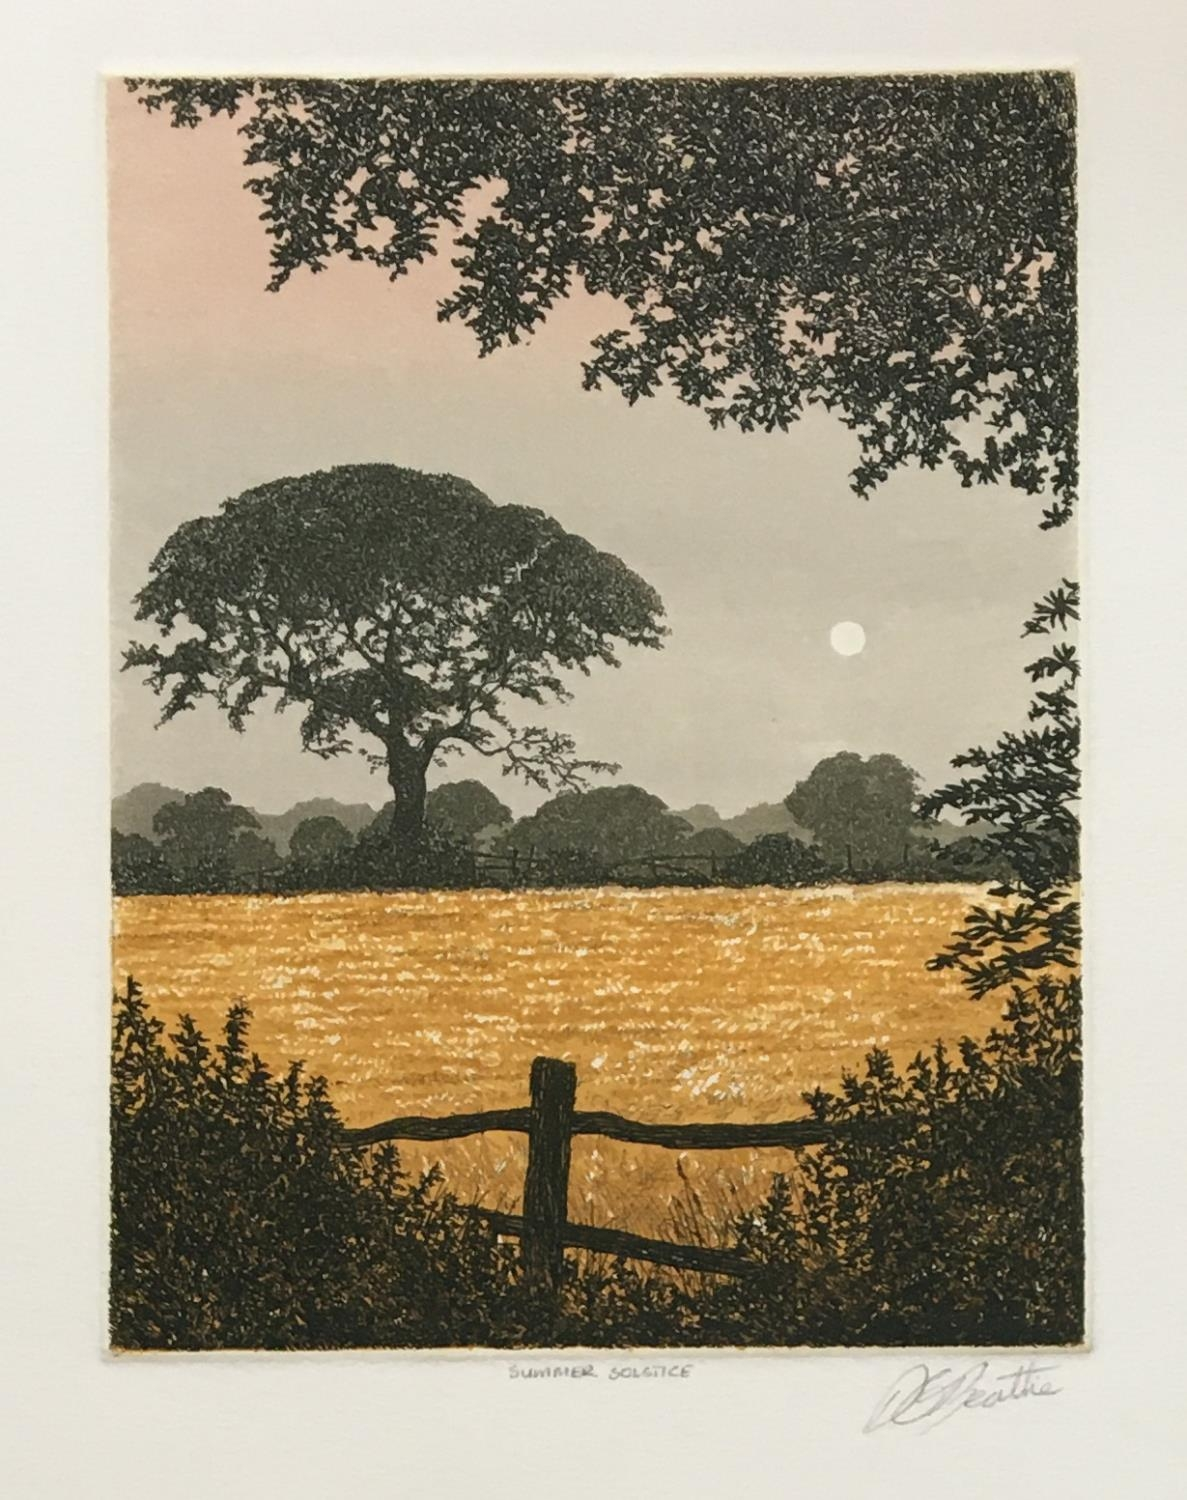 David G Beattie (b.1955) 'Valley Between' and 'Summer Solstice', coloured etchings signed and titled - Image 3 of 3